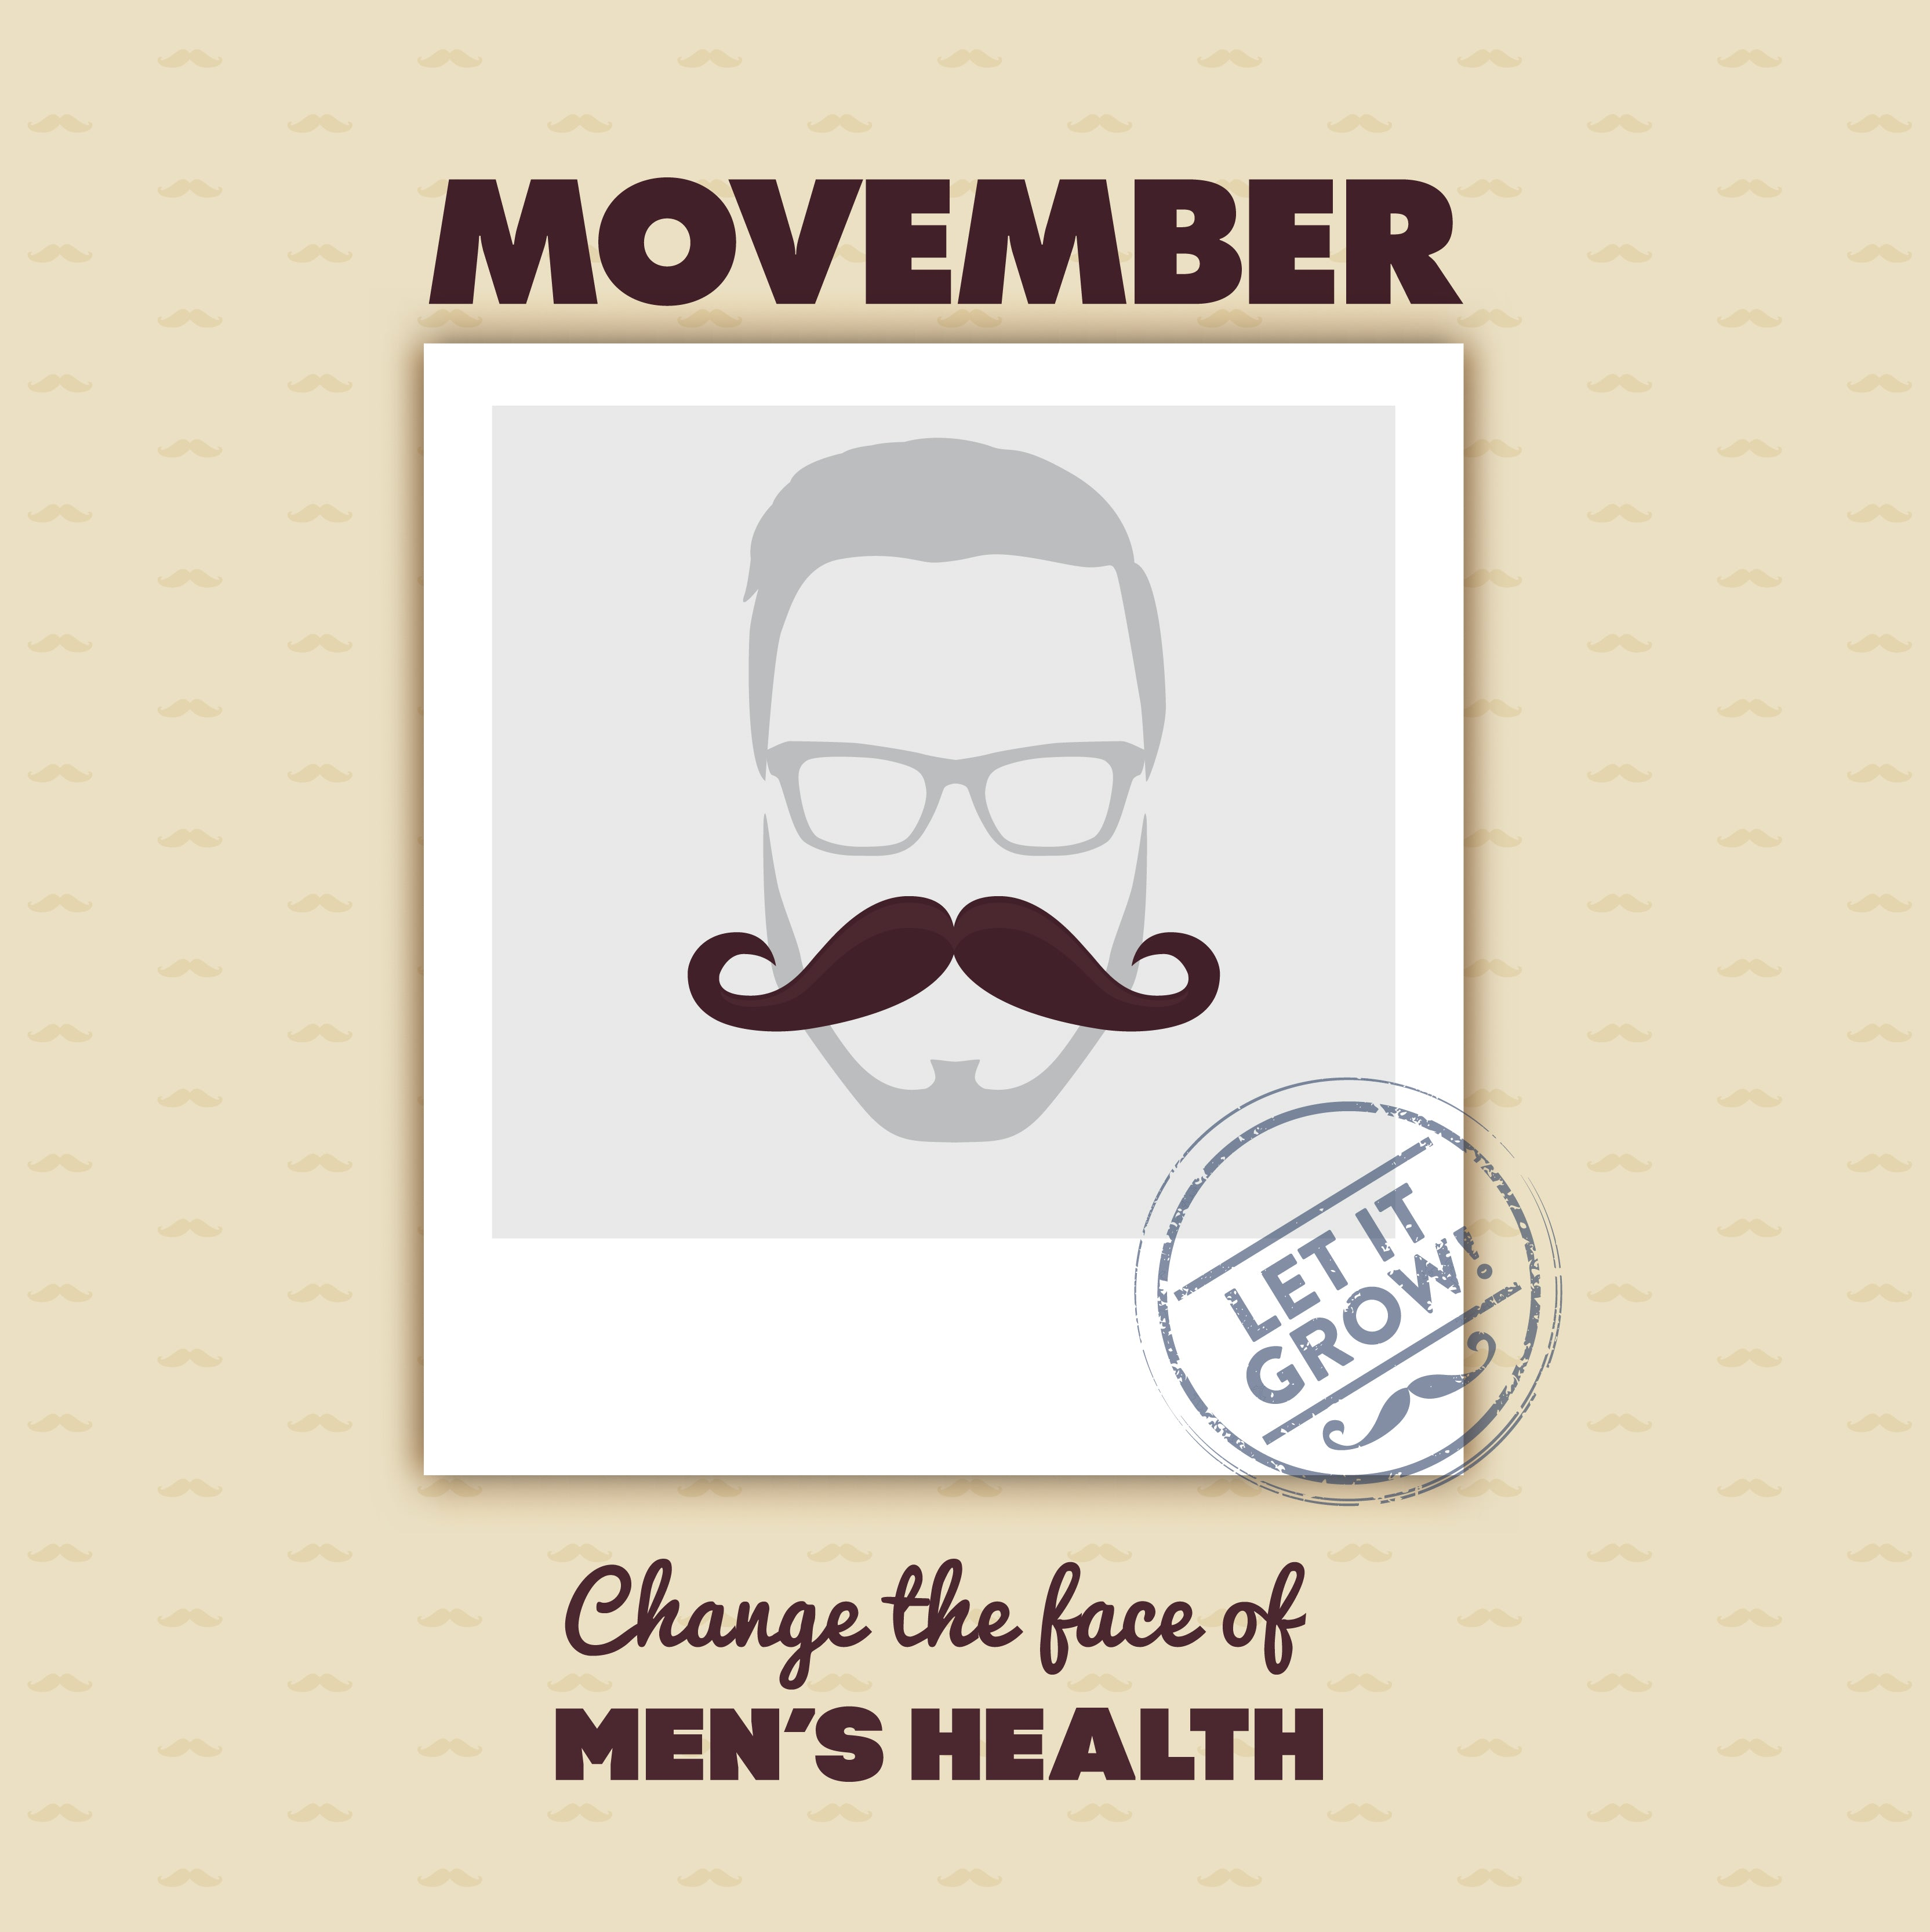 Movember Men's Health Awareness Advocacy